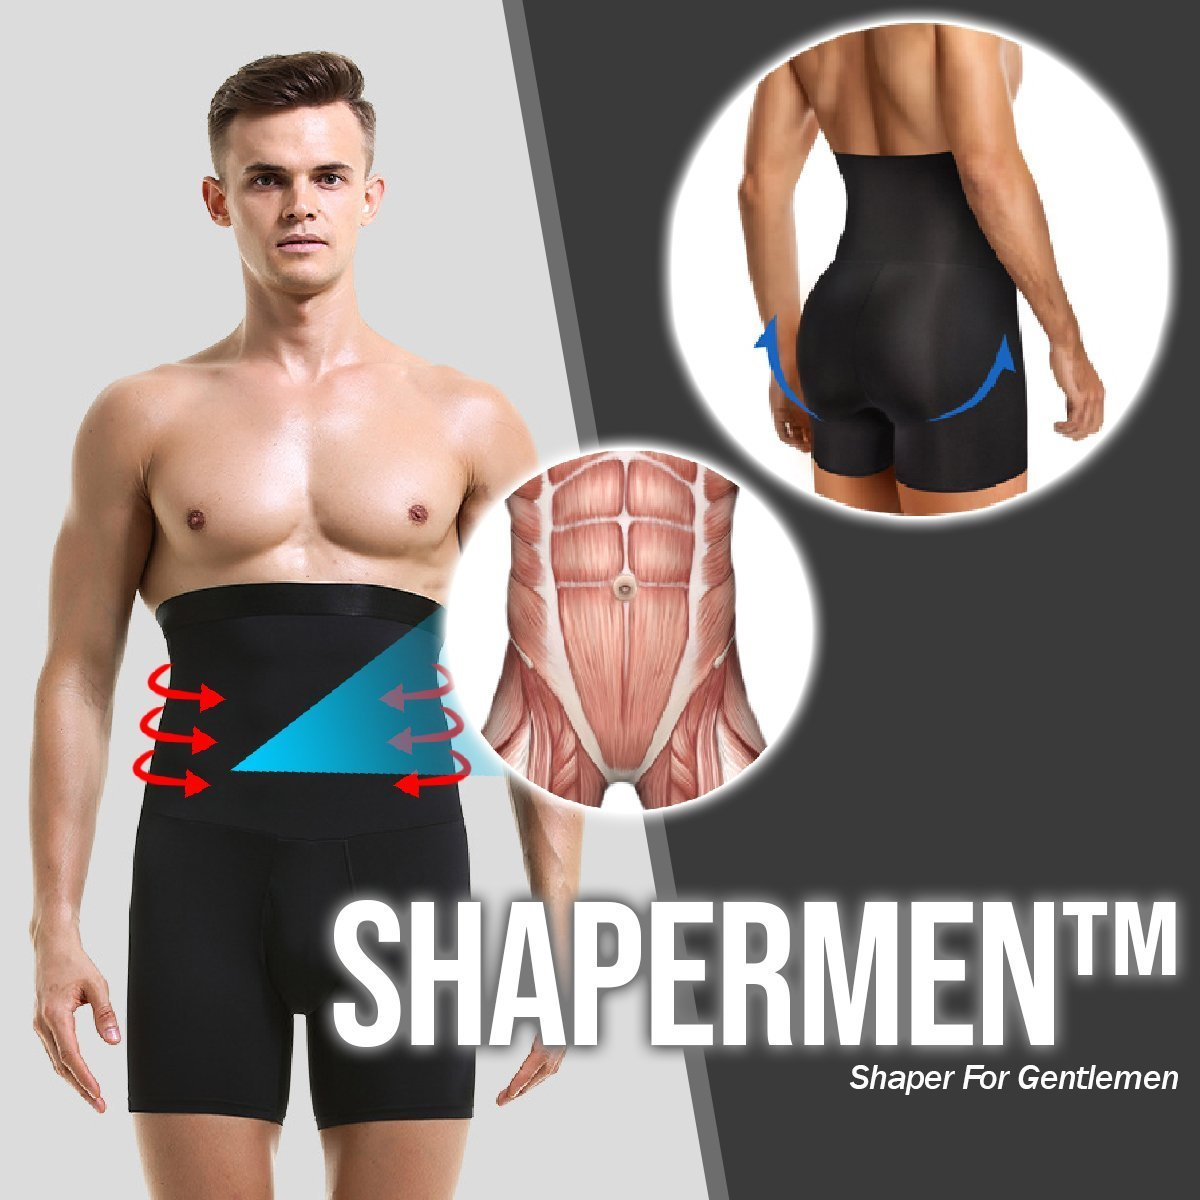 (Buy 2 can free shipping) ShaperMen Shaper For Gentlemen